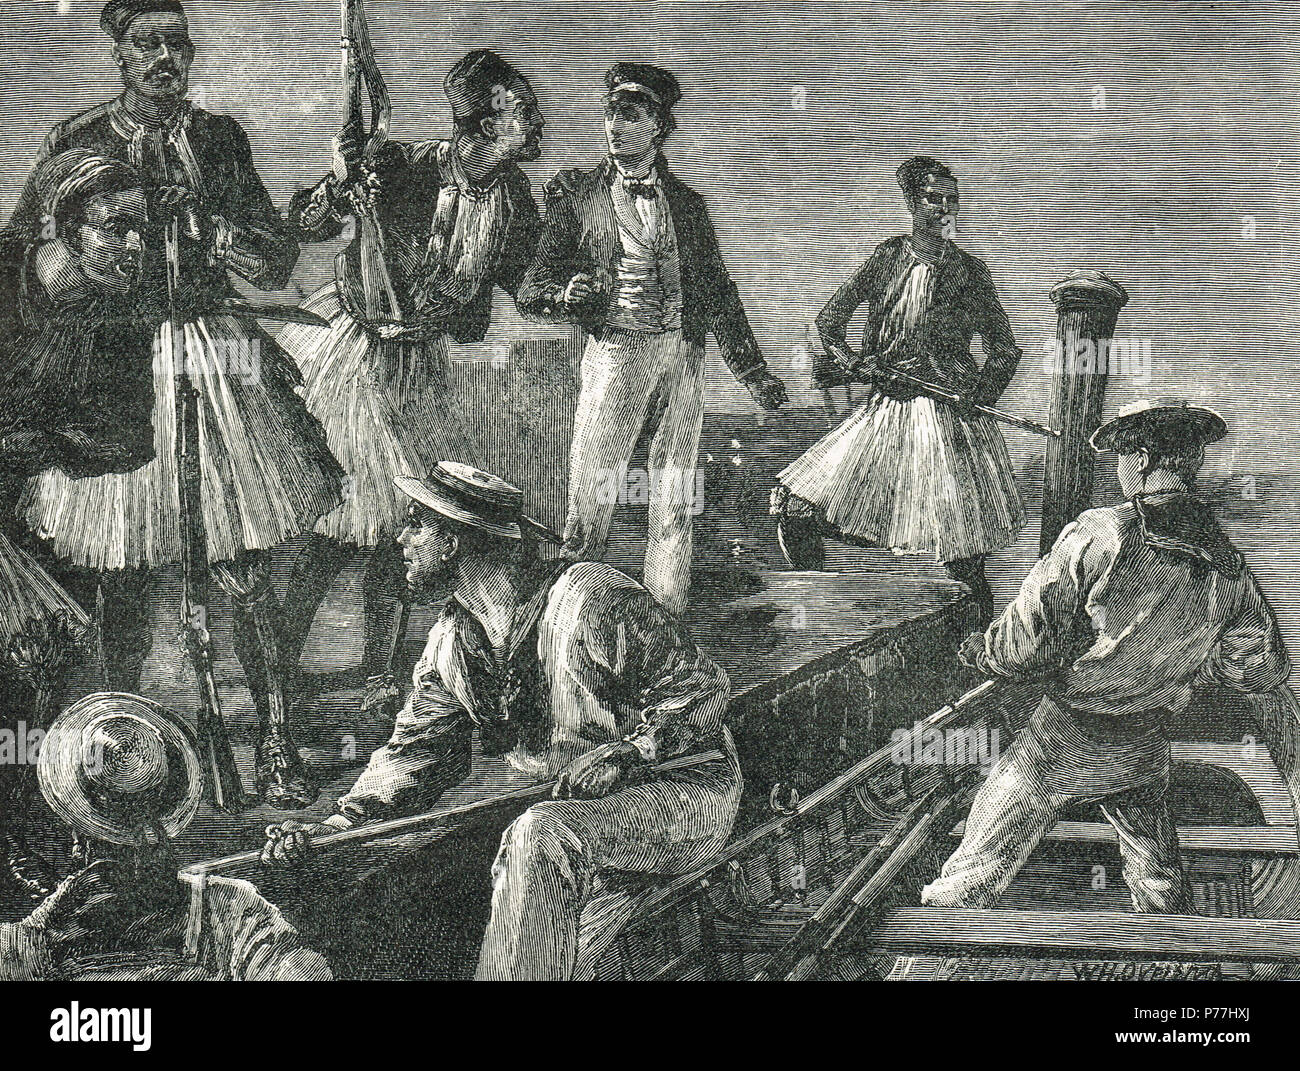 Arrest of British Sailors from HMS Fantome, arrested by Greek Soldiers in 1850 during an episode of British gun boat diplomacy, following the Don Pacifico affair - Stock Image